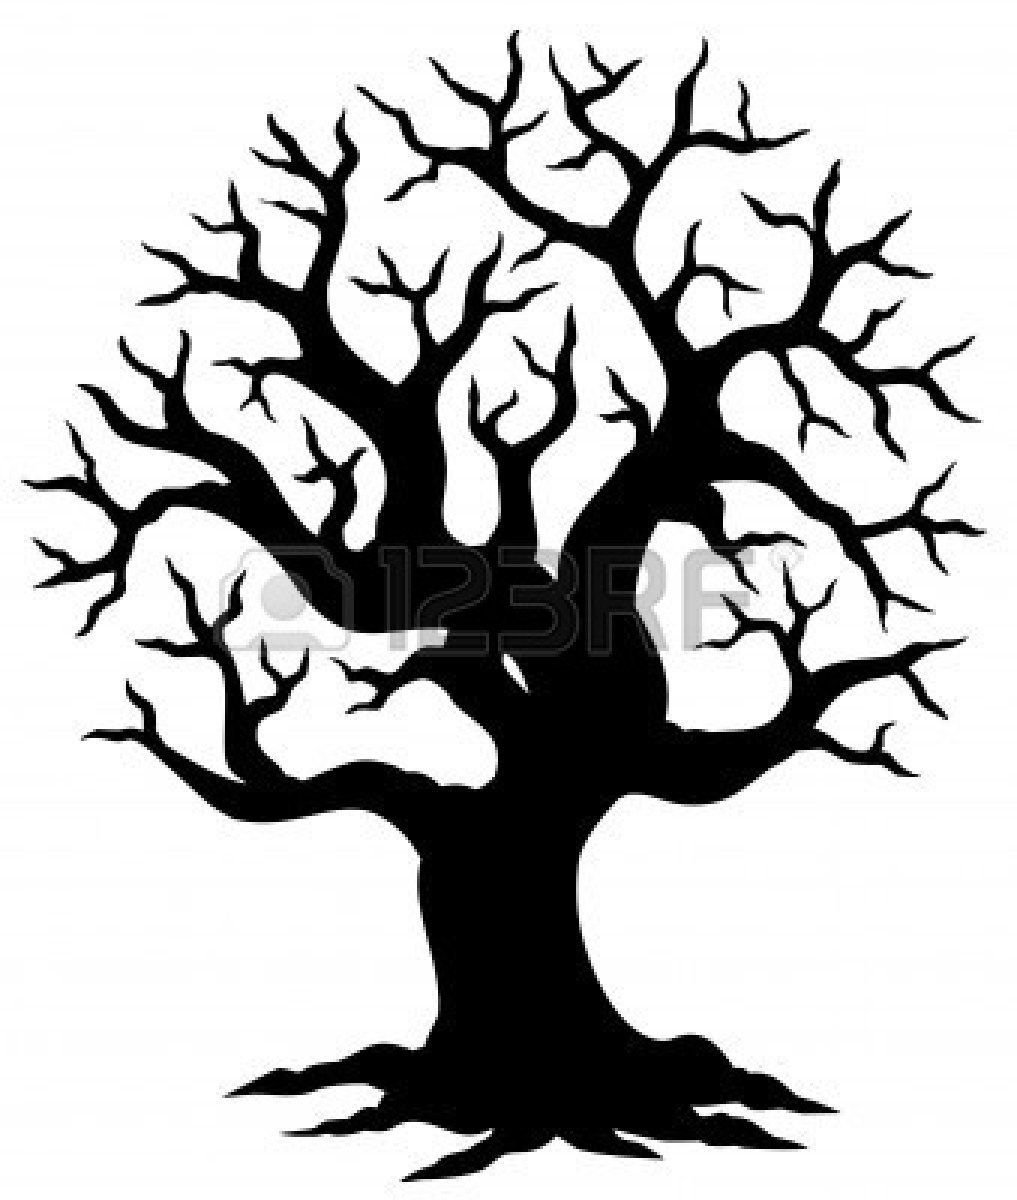 1017x1200 12 Family Tree Silhouette Vector Images